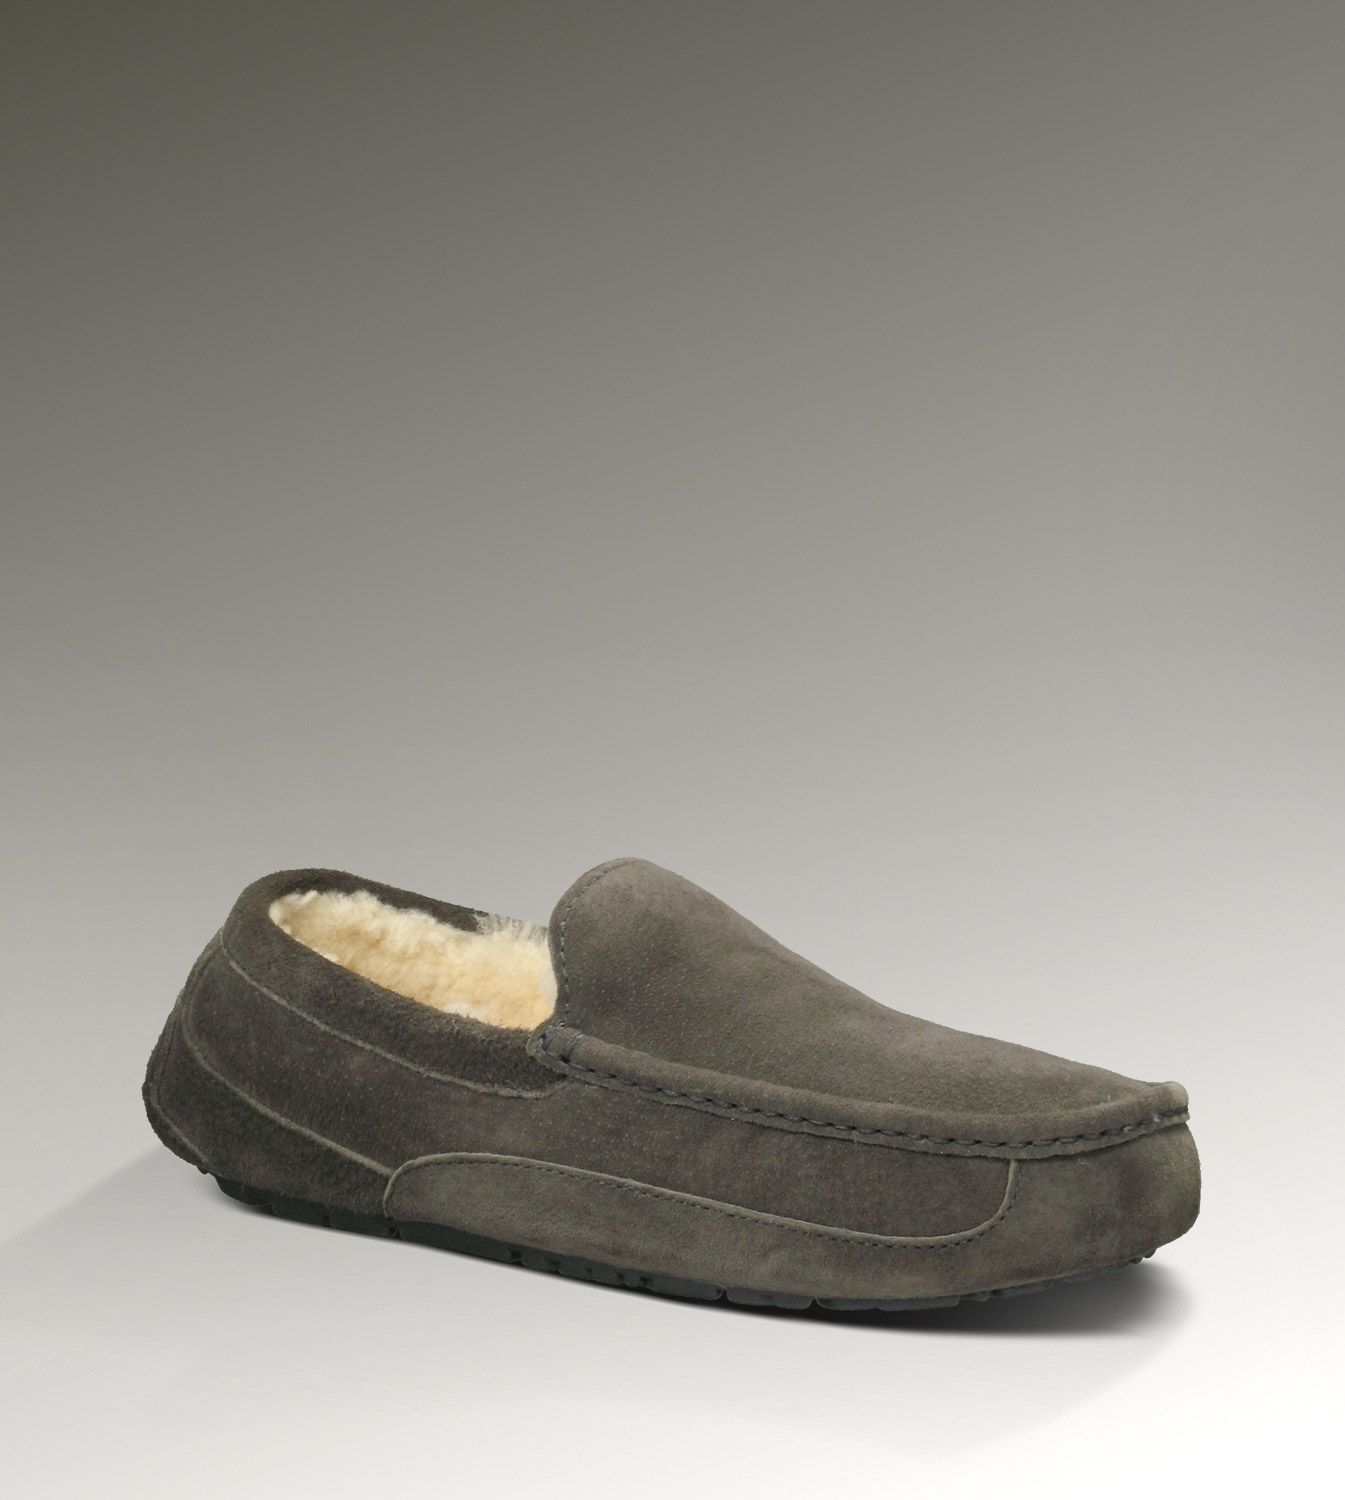 men ugg slippers size 11 nz